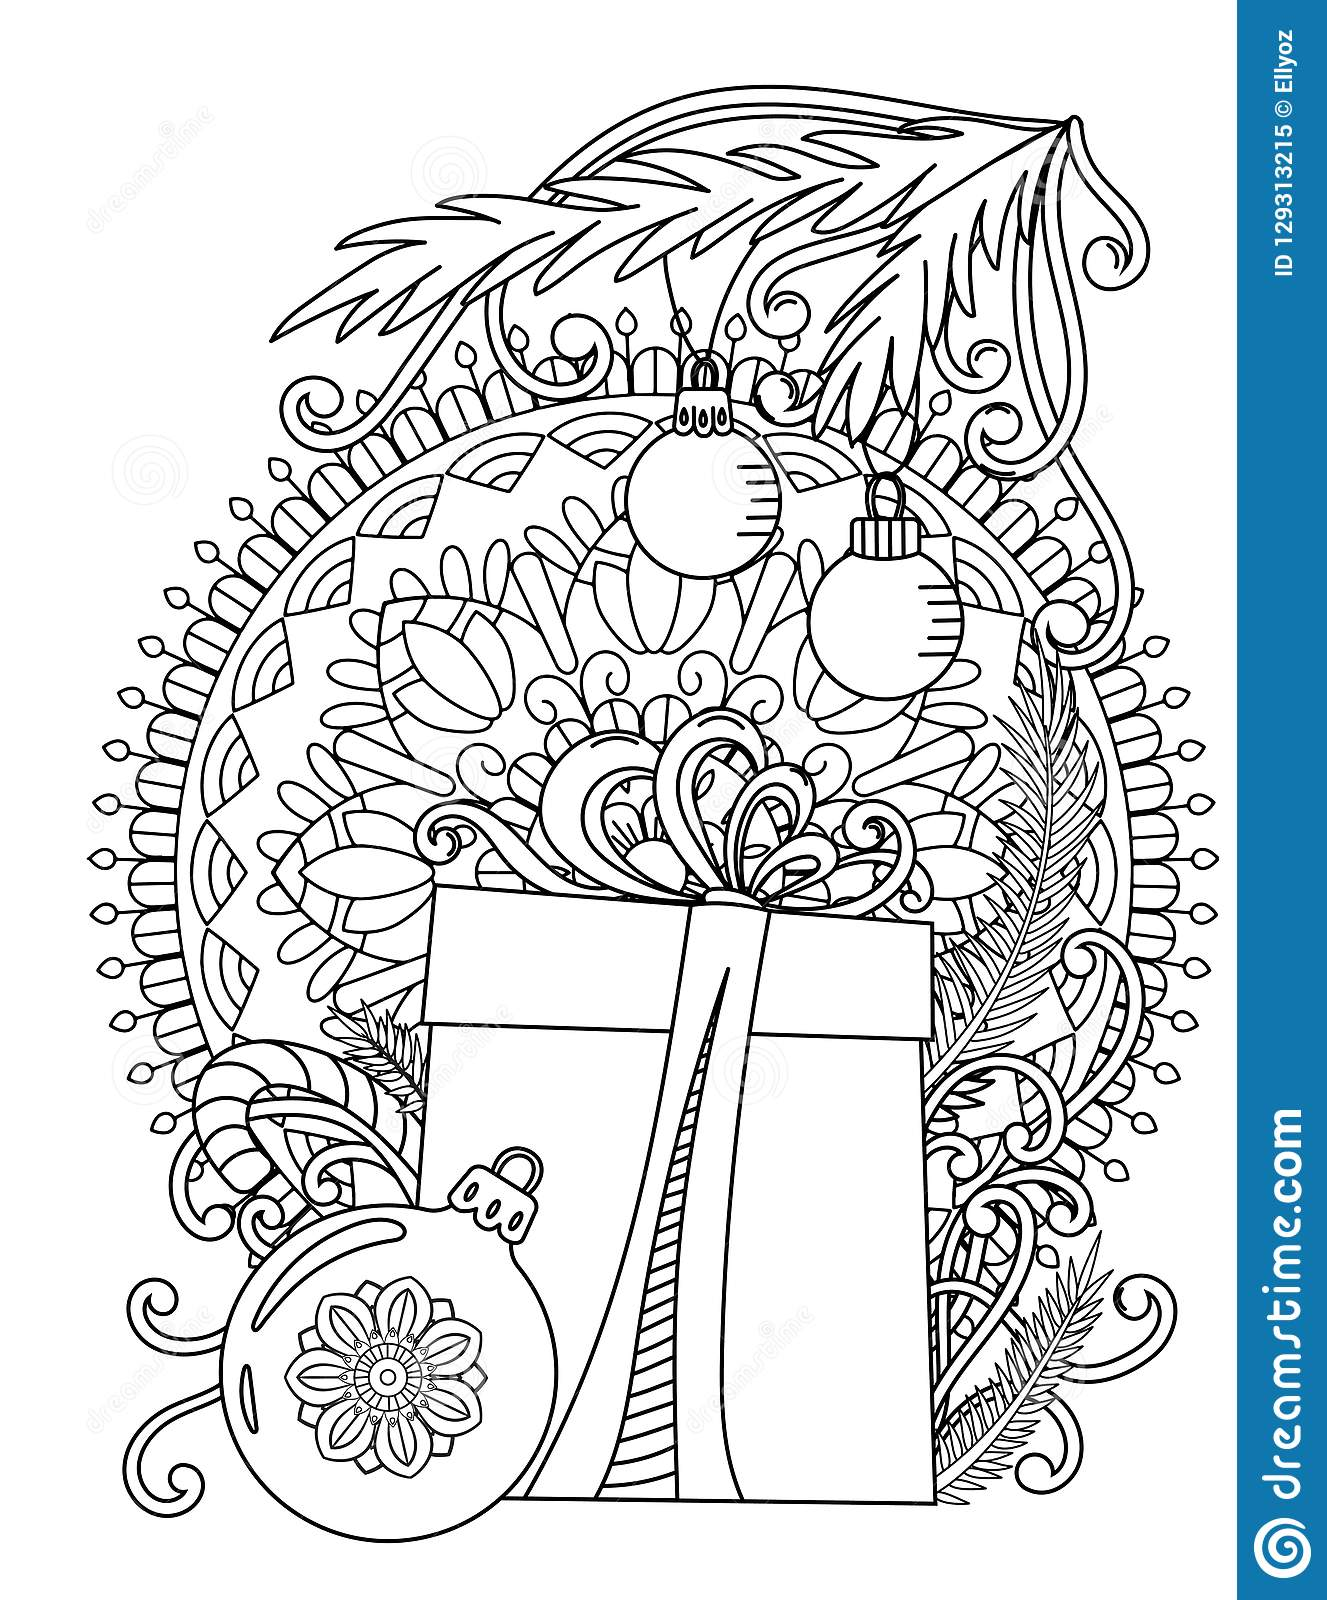 Christmas Mandala with Bell and Angel in Town coloring page | Free ... | 1600x1327